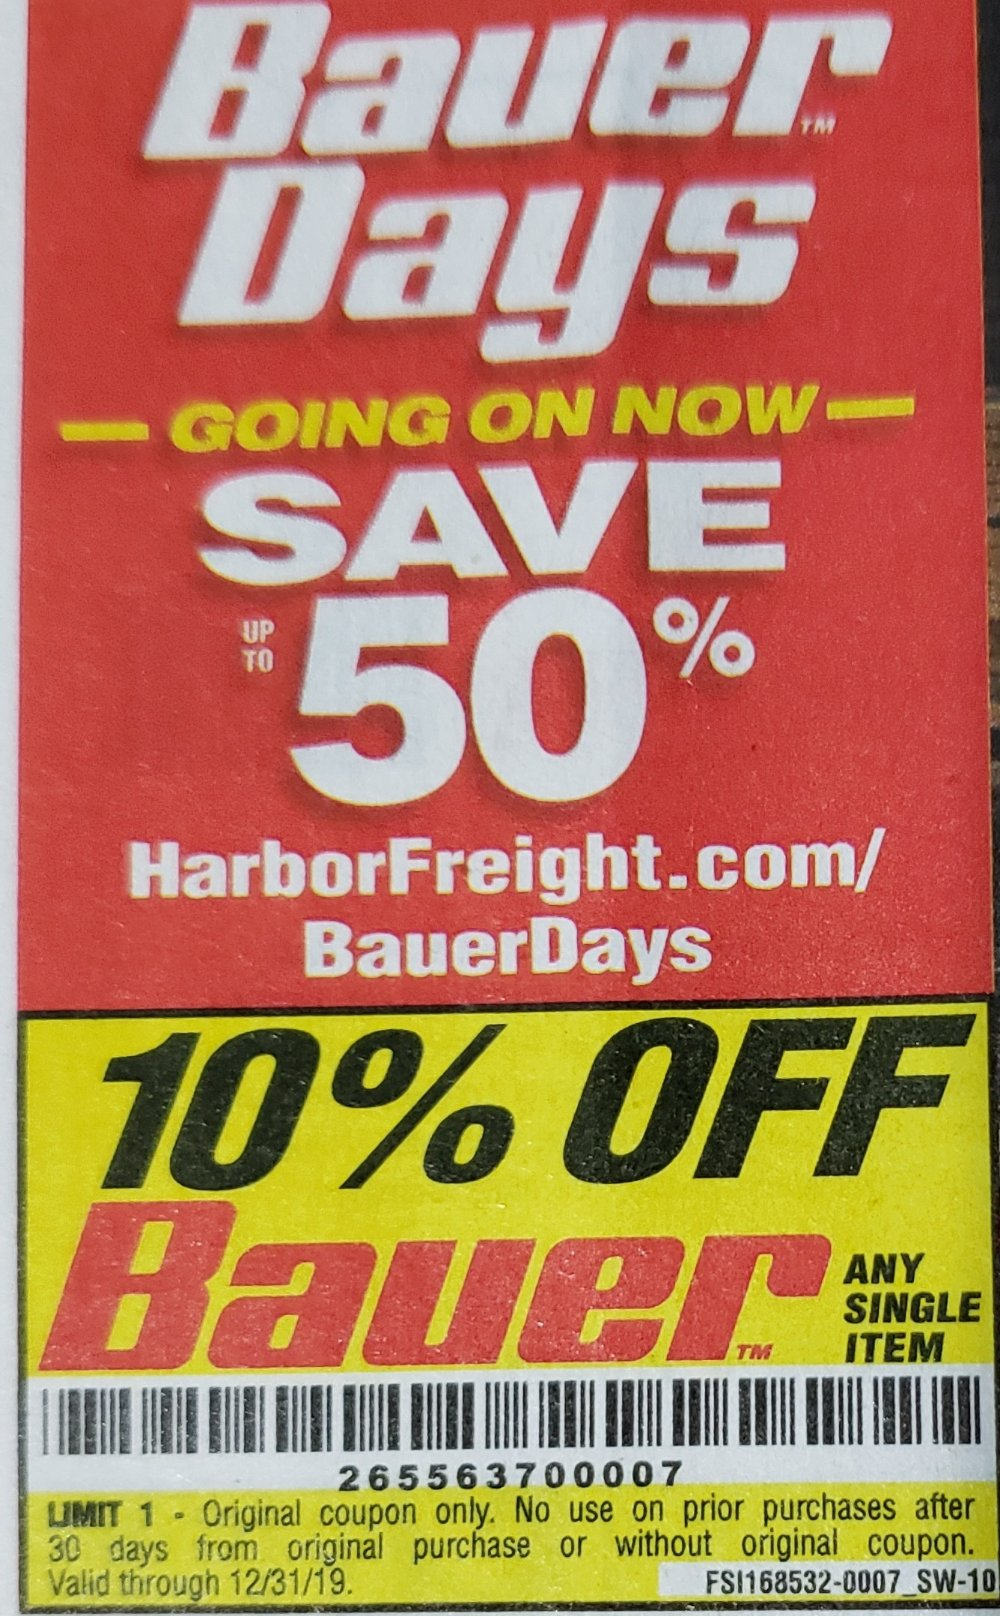 Harbor Freight Coupons, HF Coupons, 20% off - 10% offAny Bauer tools